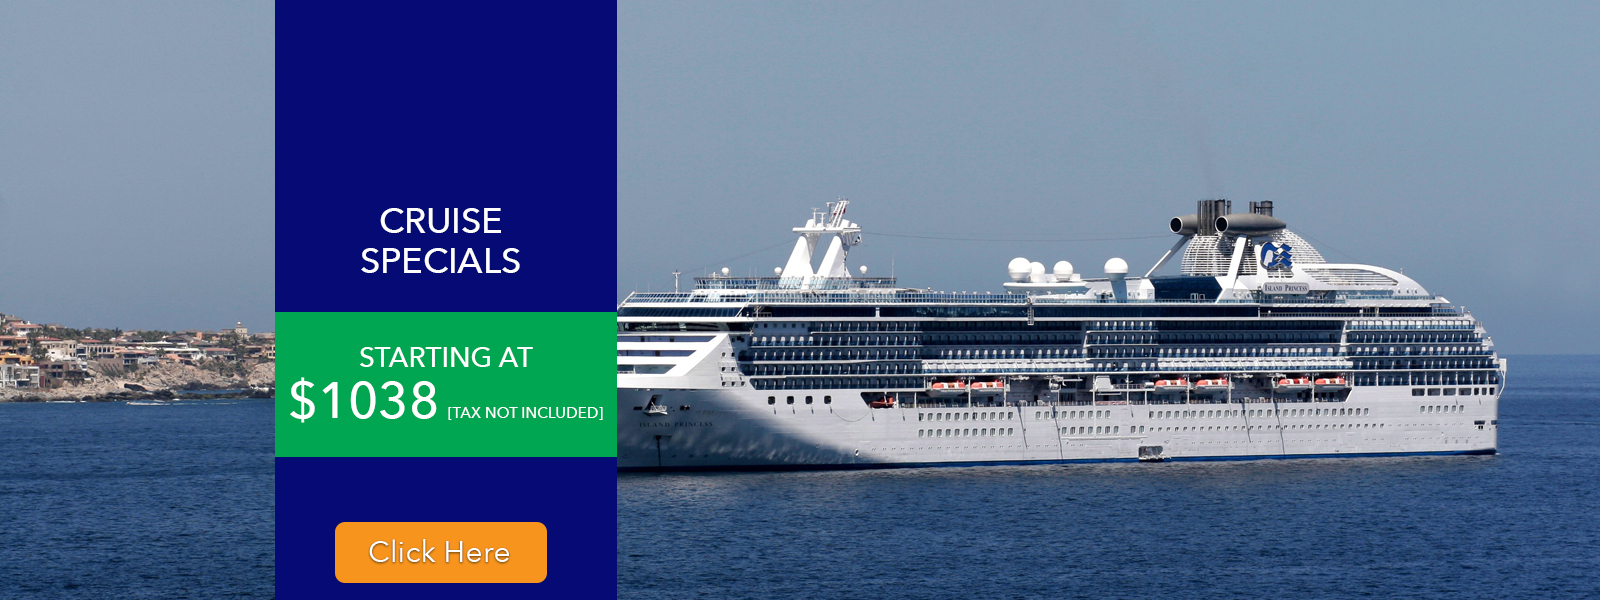 Cruise Specials | Cruise Packages | Cruise Deals